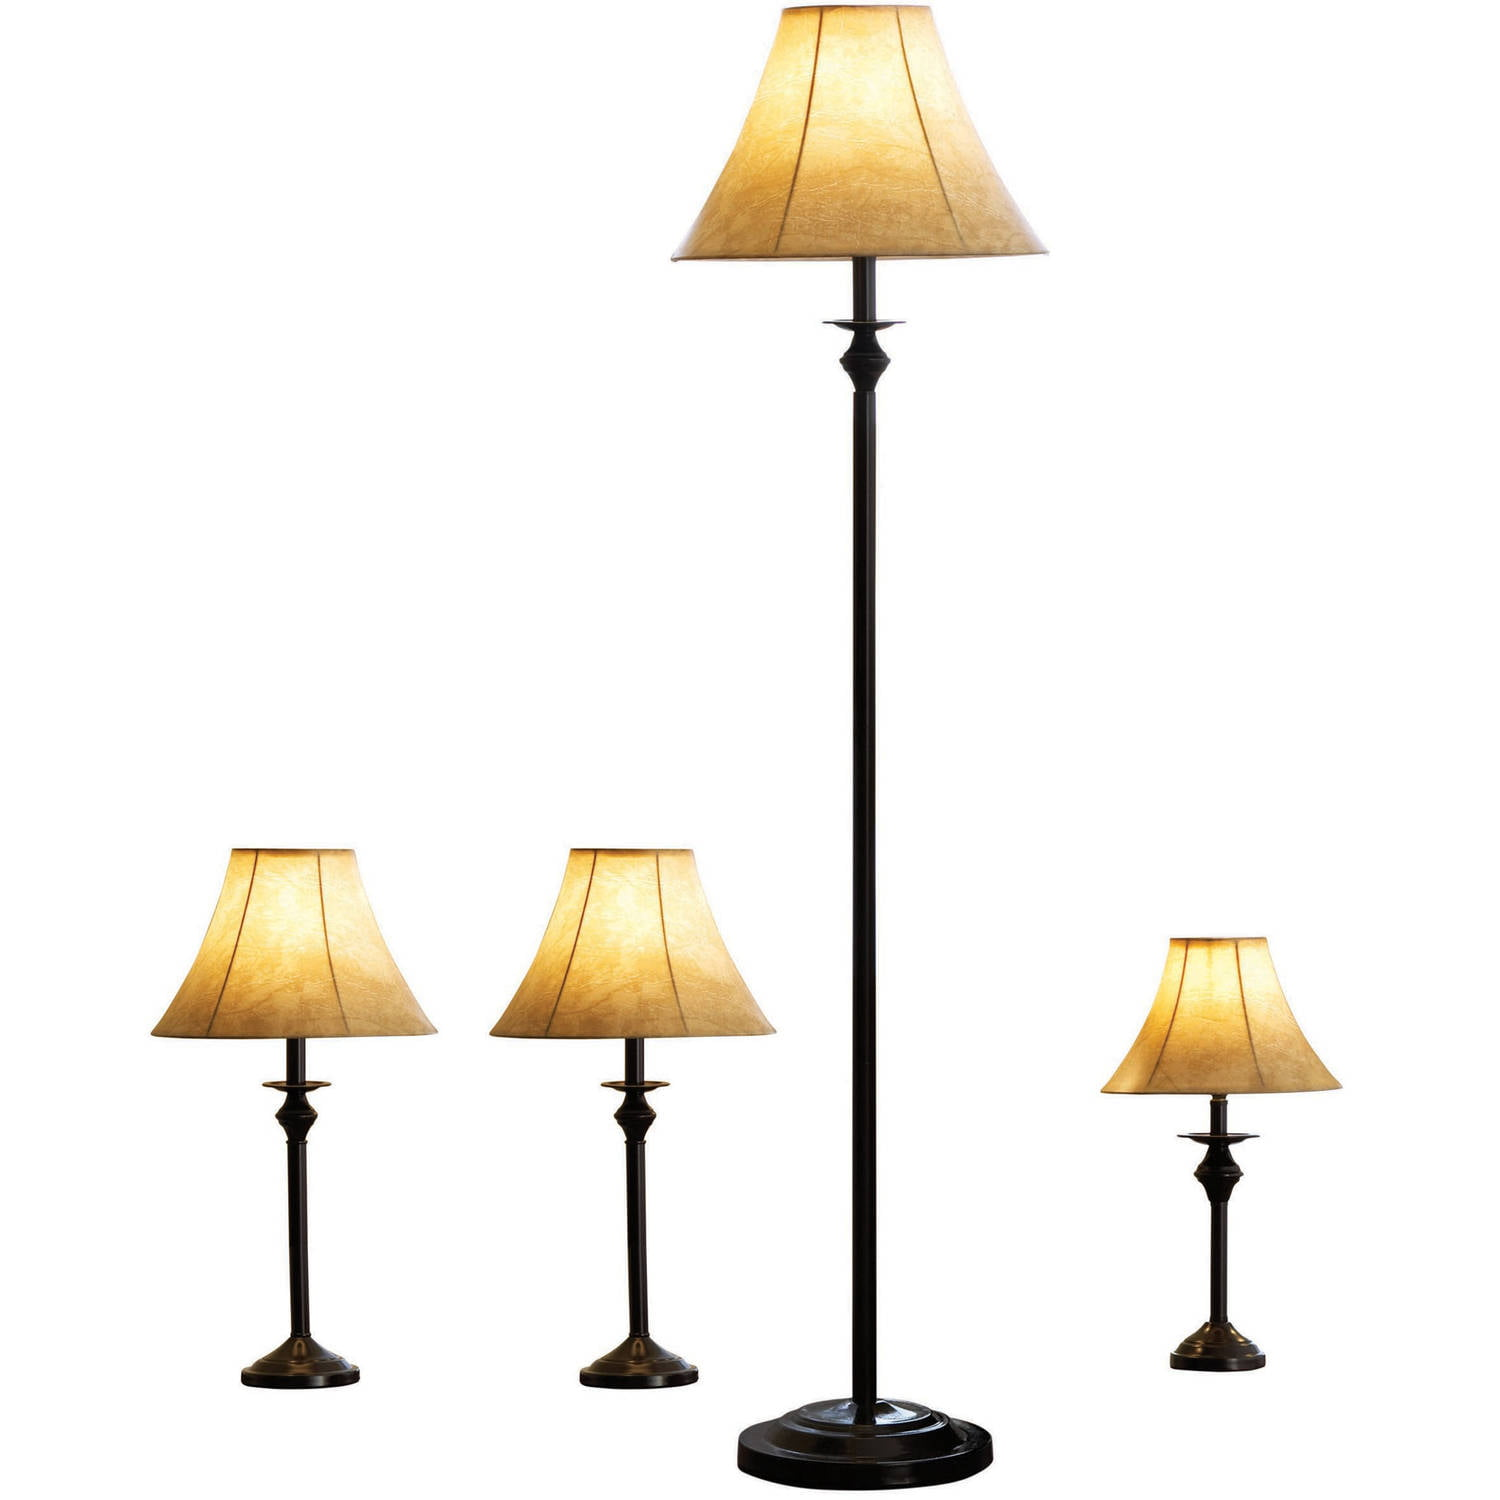 better homes and gardens 4 piece lamp set bronze finish cfl household lighting fixtures e50 household